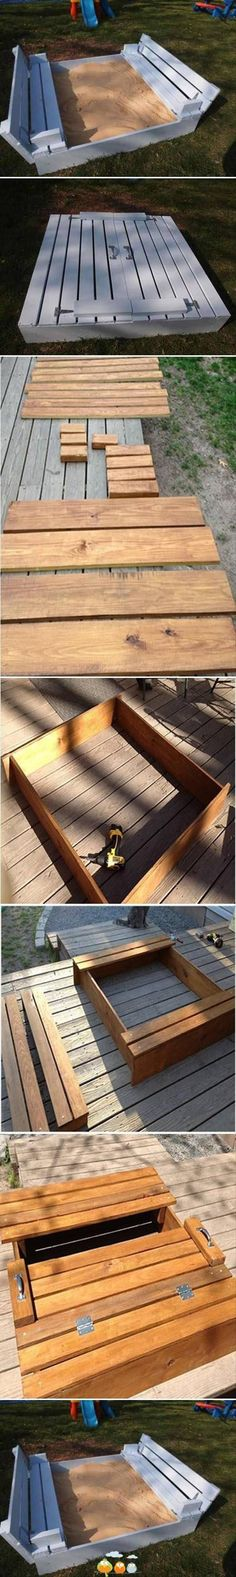 Sandkiste aus alten Paletten - DIY - 30 Amazing Uses For Old Pallets Pallet Crafts, Pallet Projects, Wood Crafts, Projects To Try, Diy Pallet, Pallet Ideas, Garden Pallet, Wooden Garden, Weekend Projects